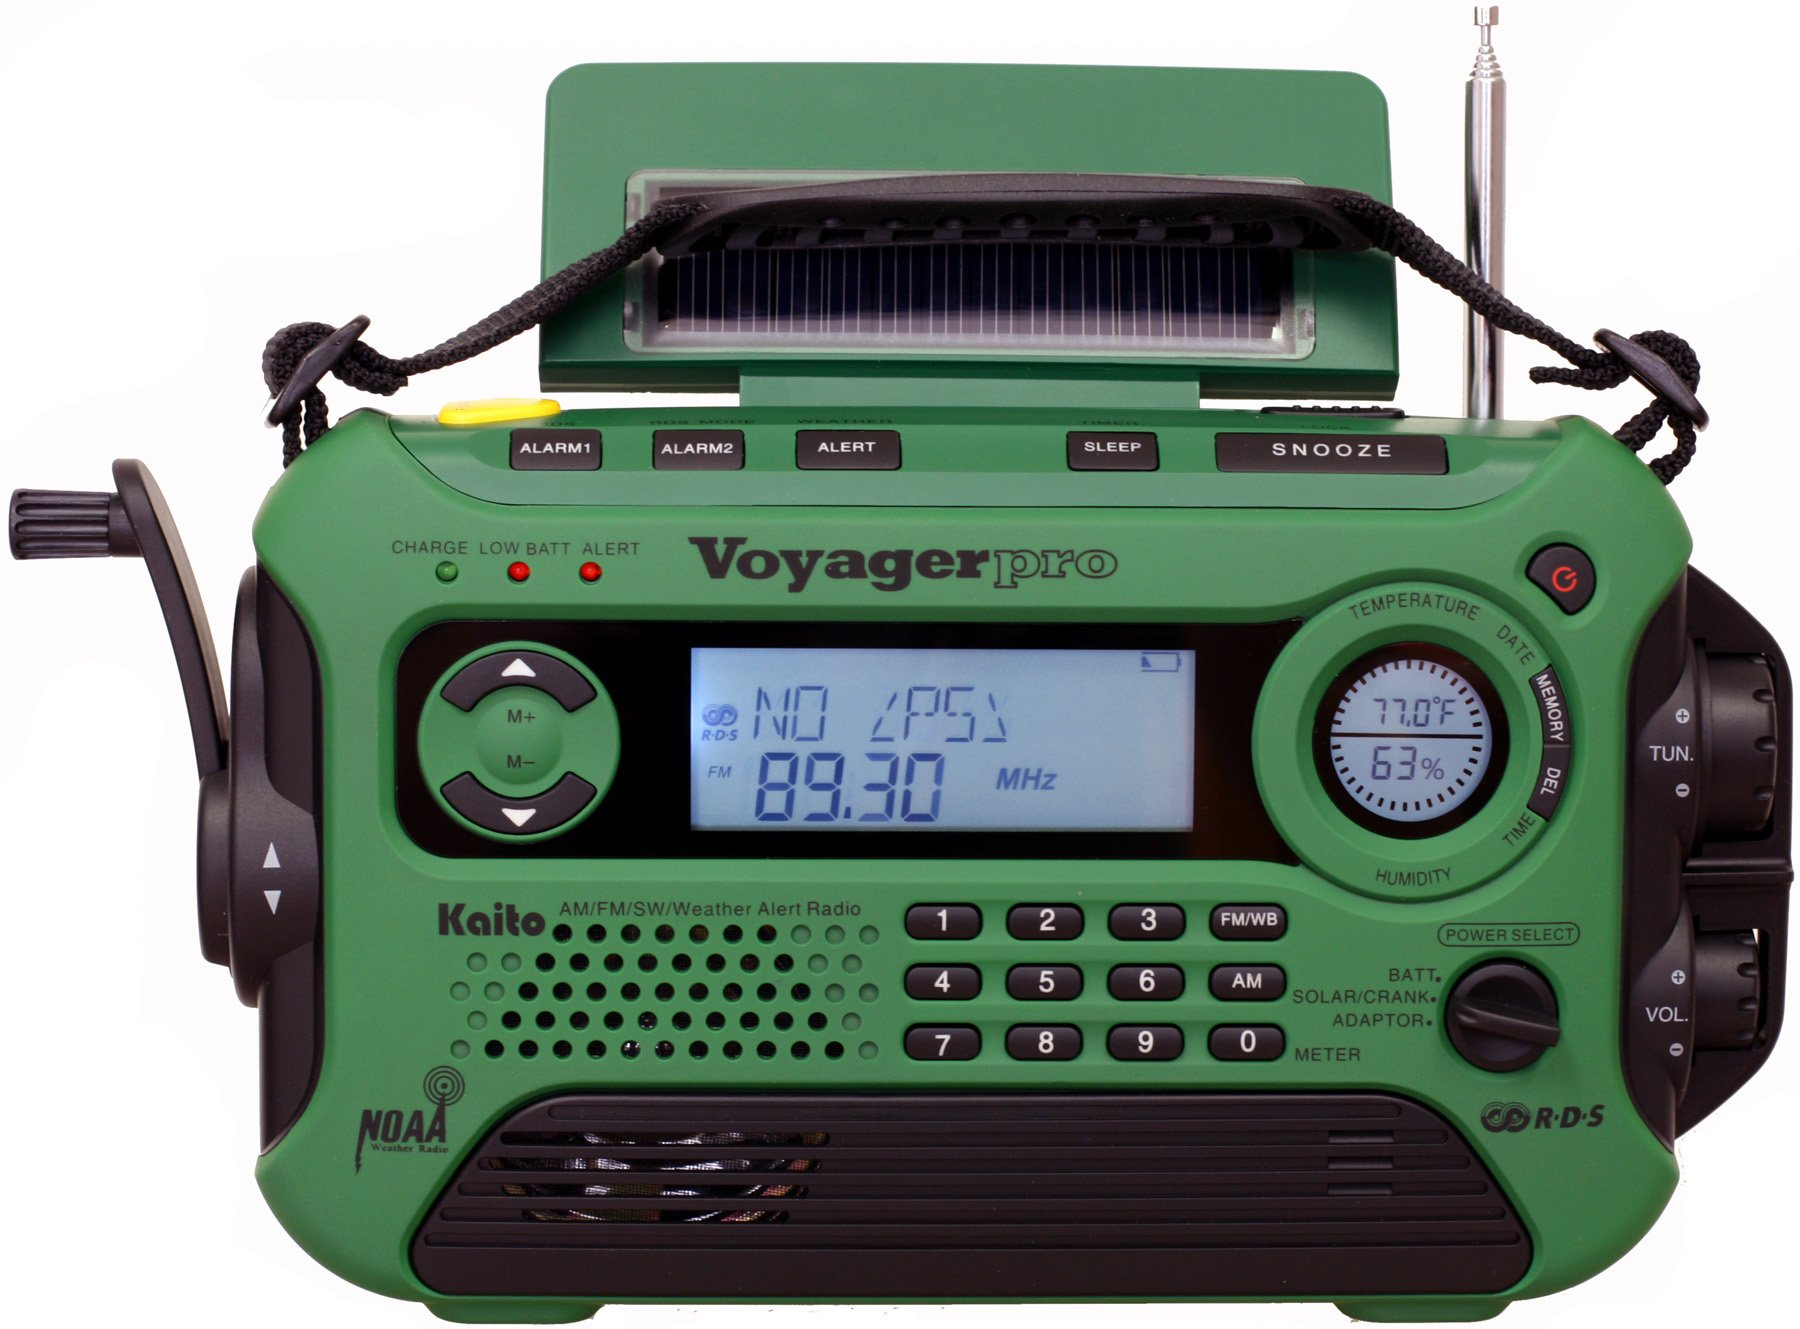 Kaito Voyager Pro KA600 Digital Solar Dynamo,Wind Up,Dynamo Cranking AM/FM/LW/SW & NOAA Weather Emergency Radio with Flashlight, Reading Lamp Alert,Smart Phone Charger & RDS and Real-Time Alert, Green by Kaito